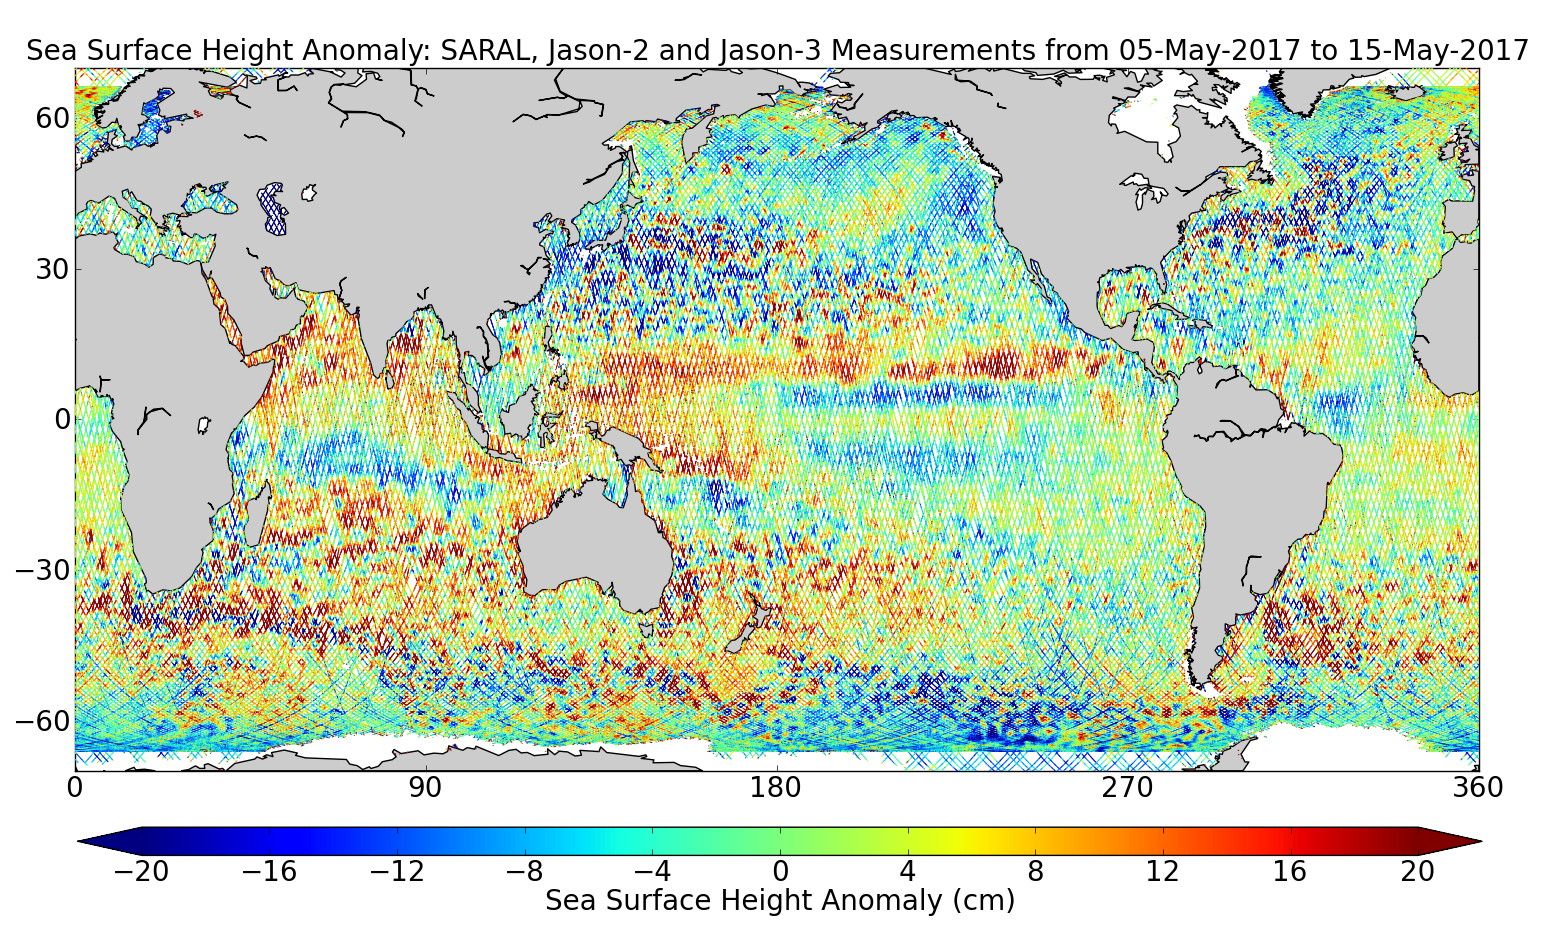 Sea Surface Height Anomaly: SARAL, Jason-2 and Jason-3 Measurements from 05-May-2017 to 15-May-2017